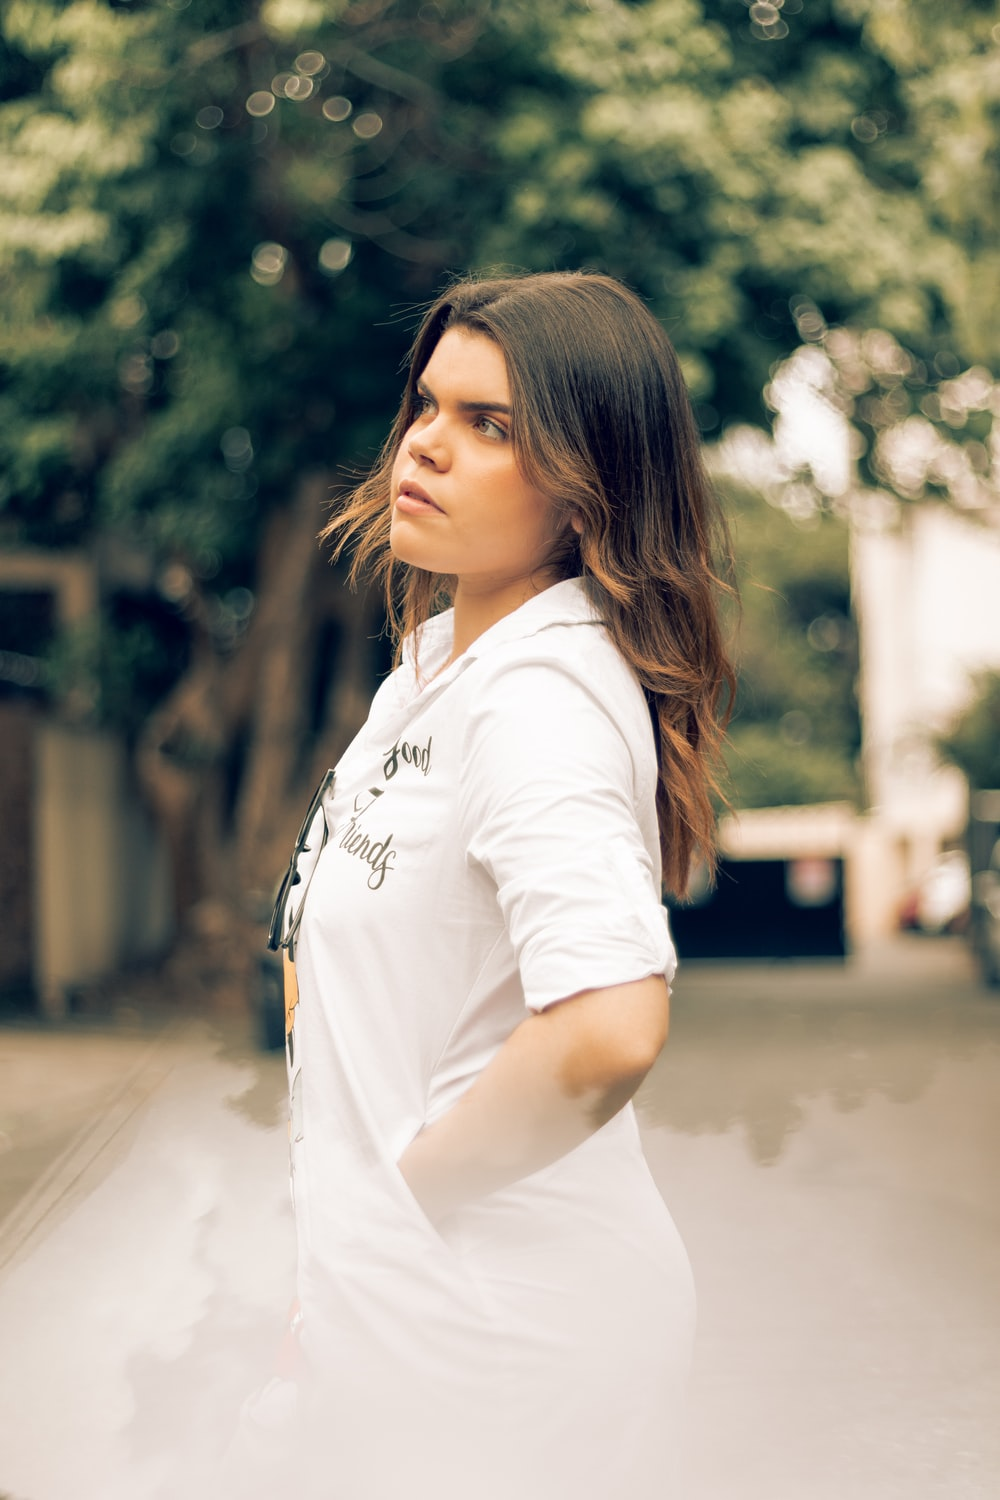 woman in white polo shirt standing on road during daytime